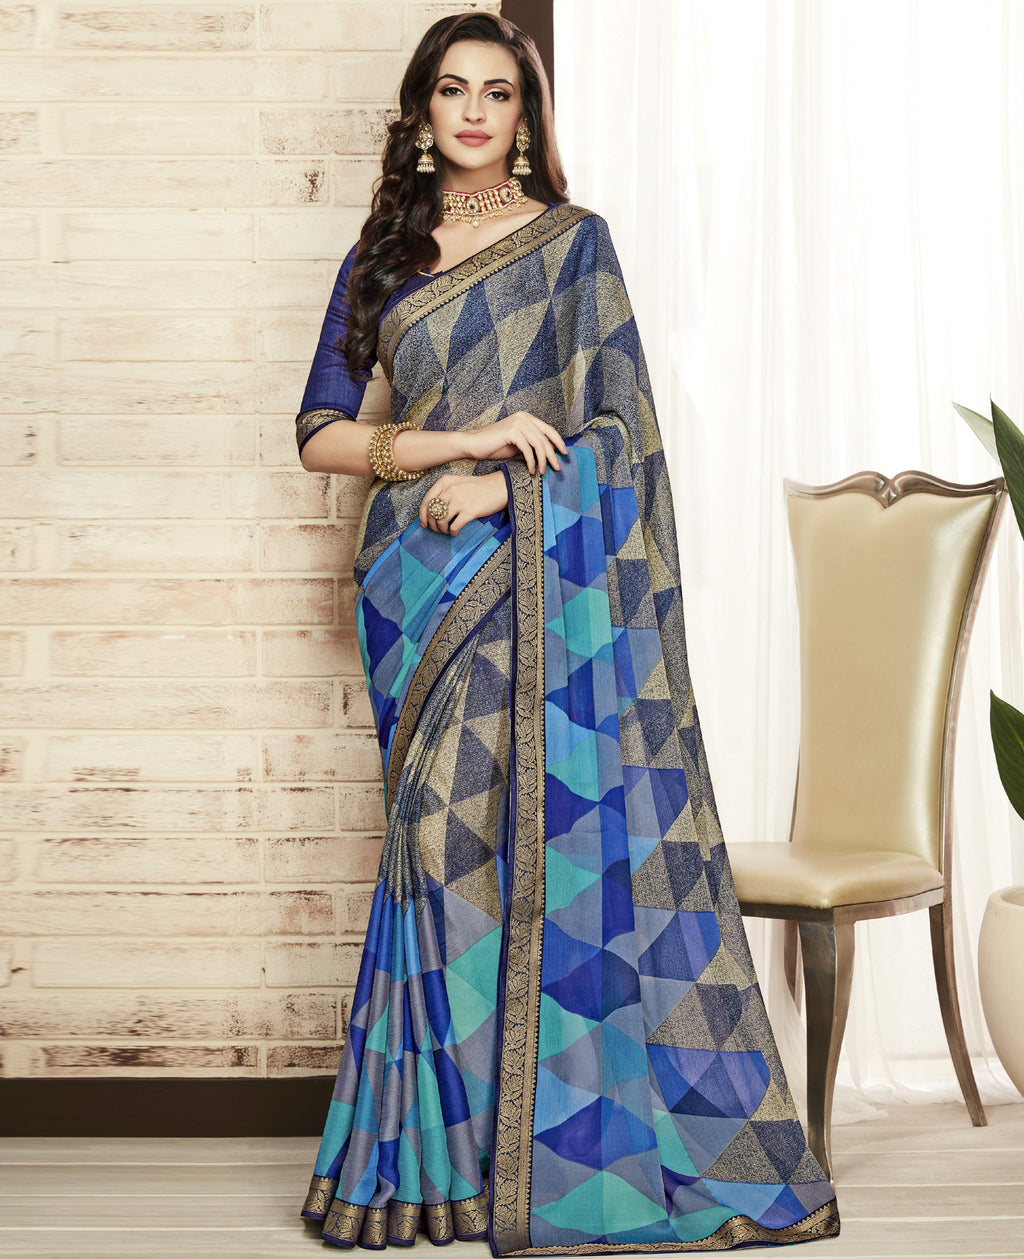 Shades Of Blue Color Chiffon Printed Sarees For Office Wear NYF-5722